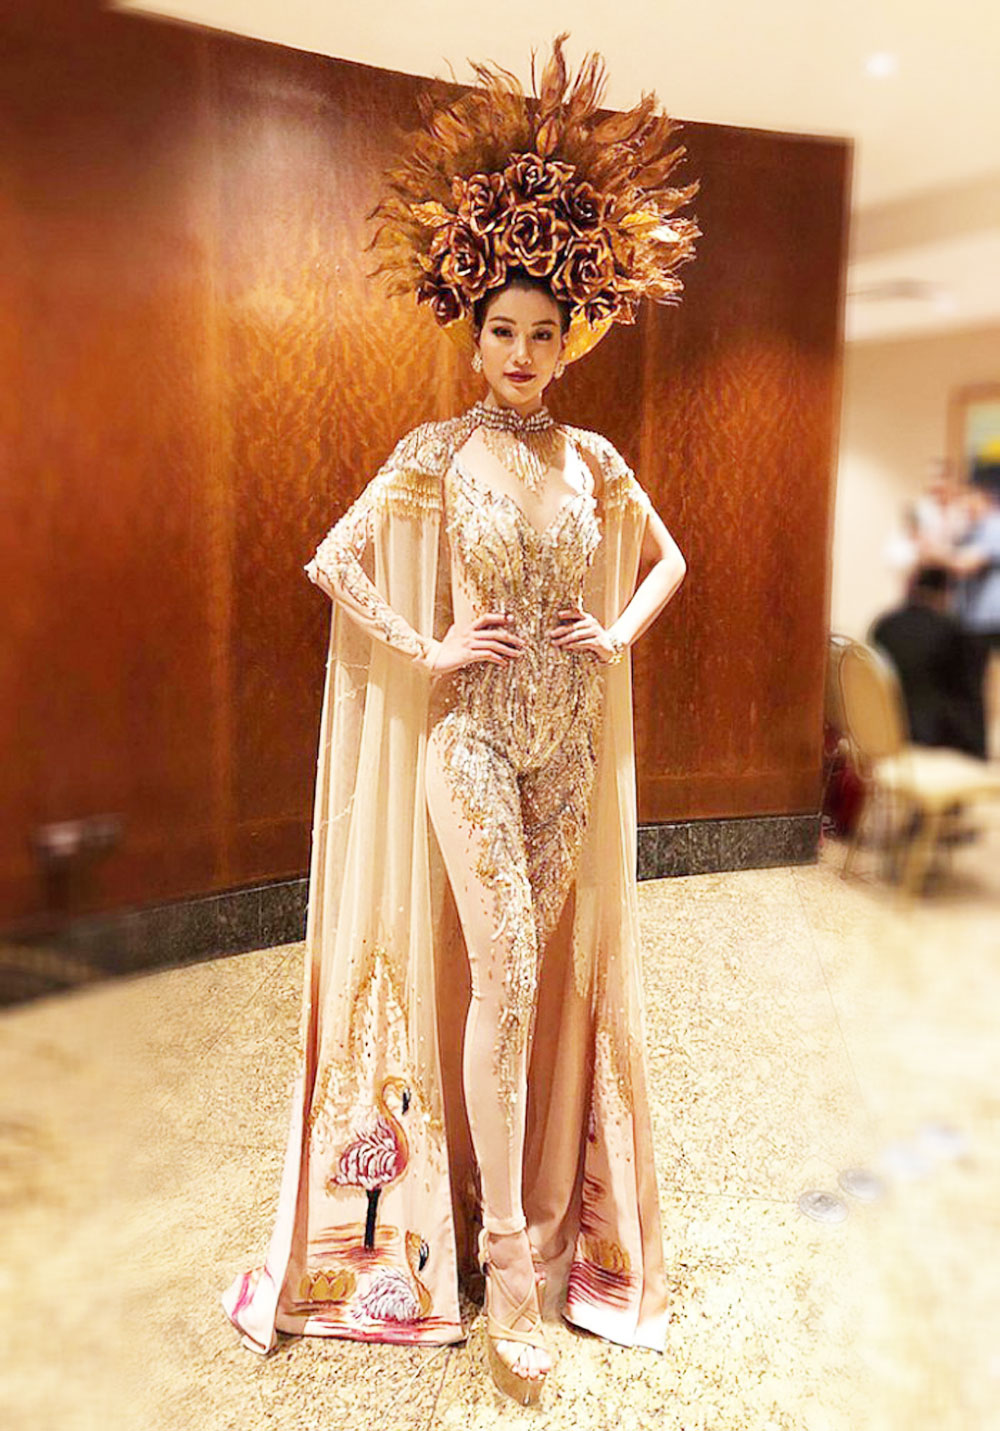 Vietnamese contestant, Miss Earth costume, Nguyen Phuong Khanh, Asia & Oceania region,  national costume round, ancient story